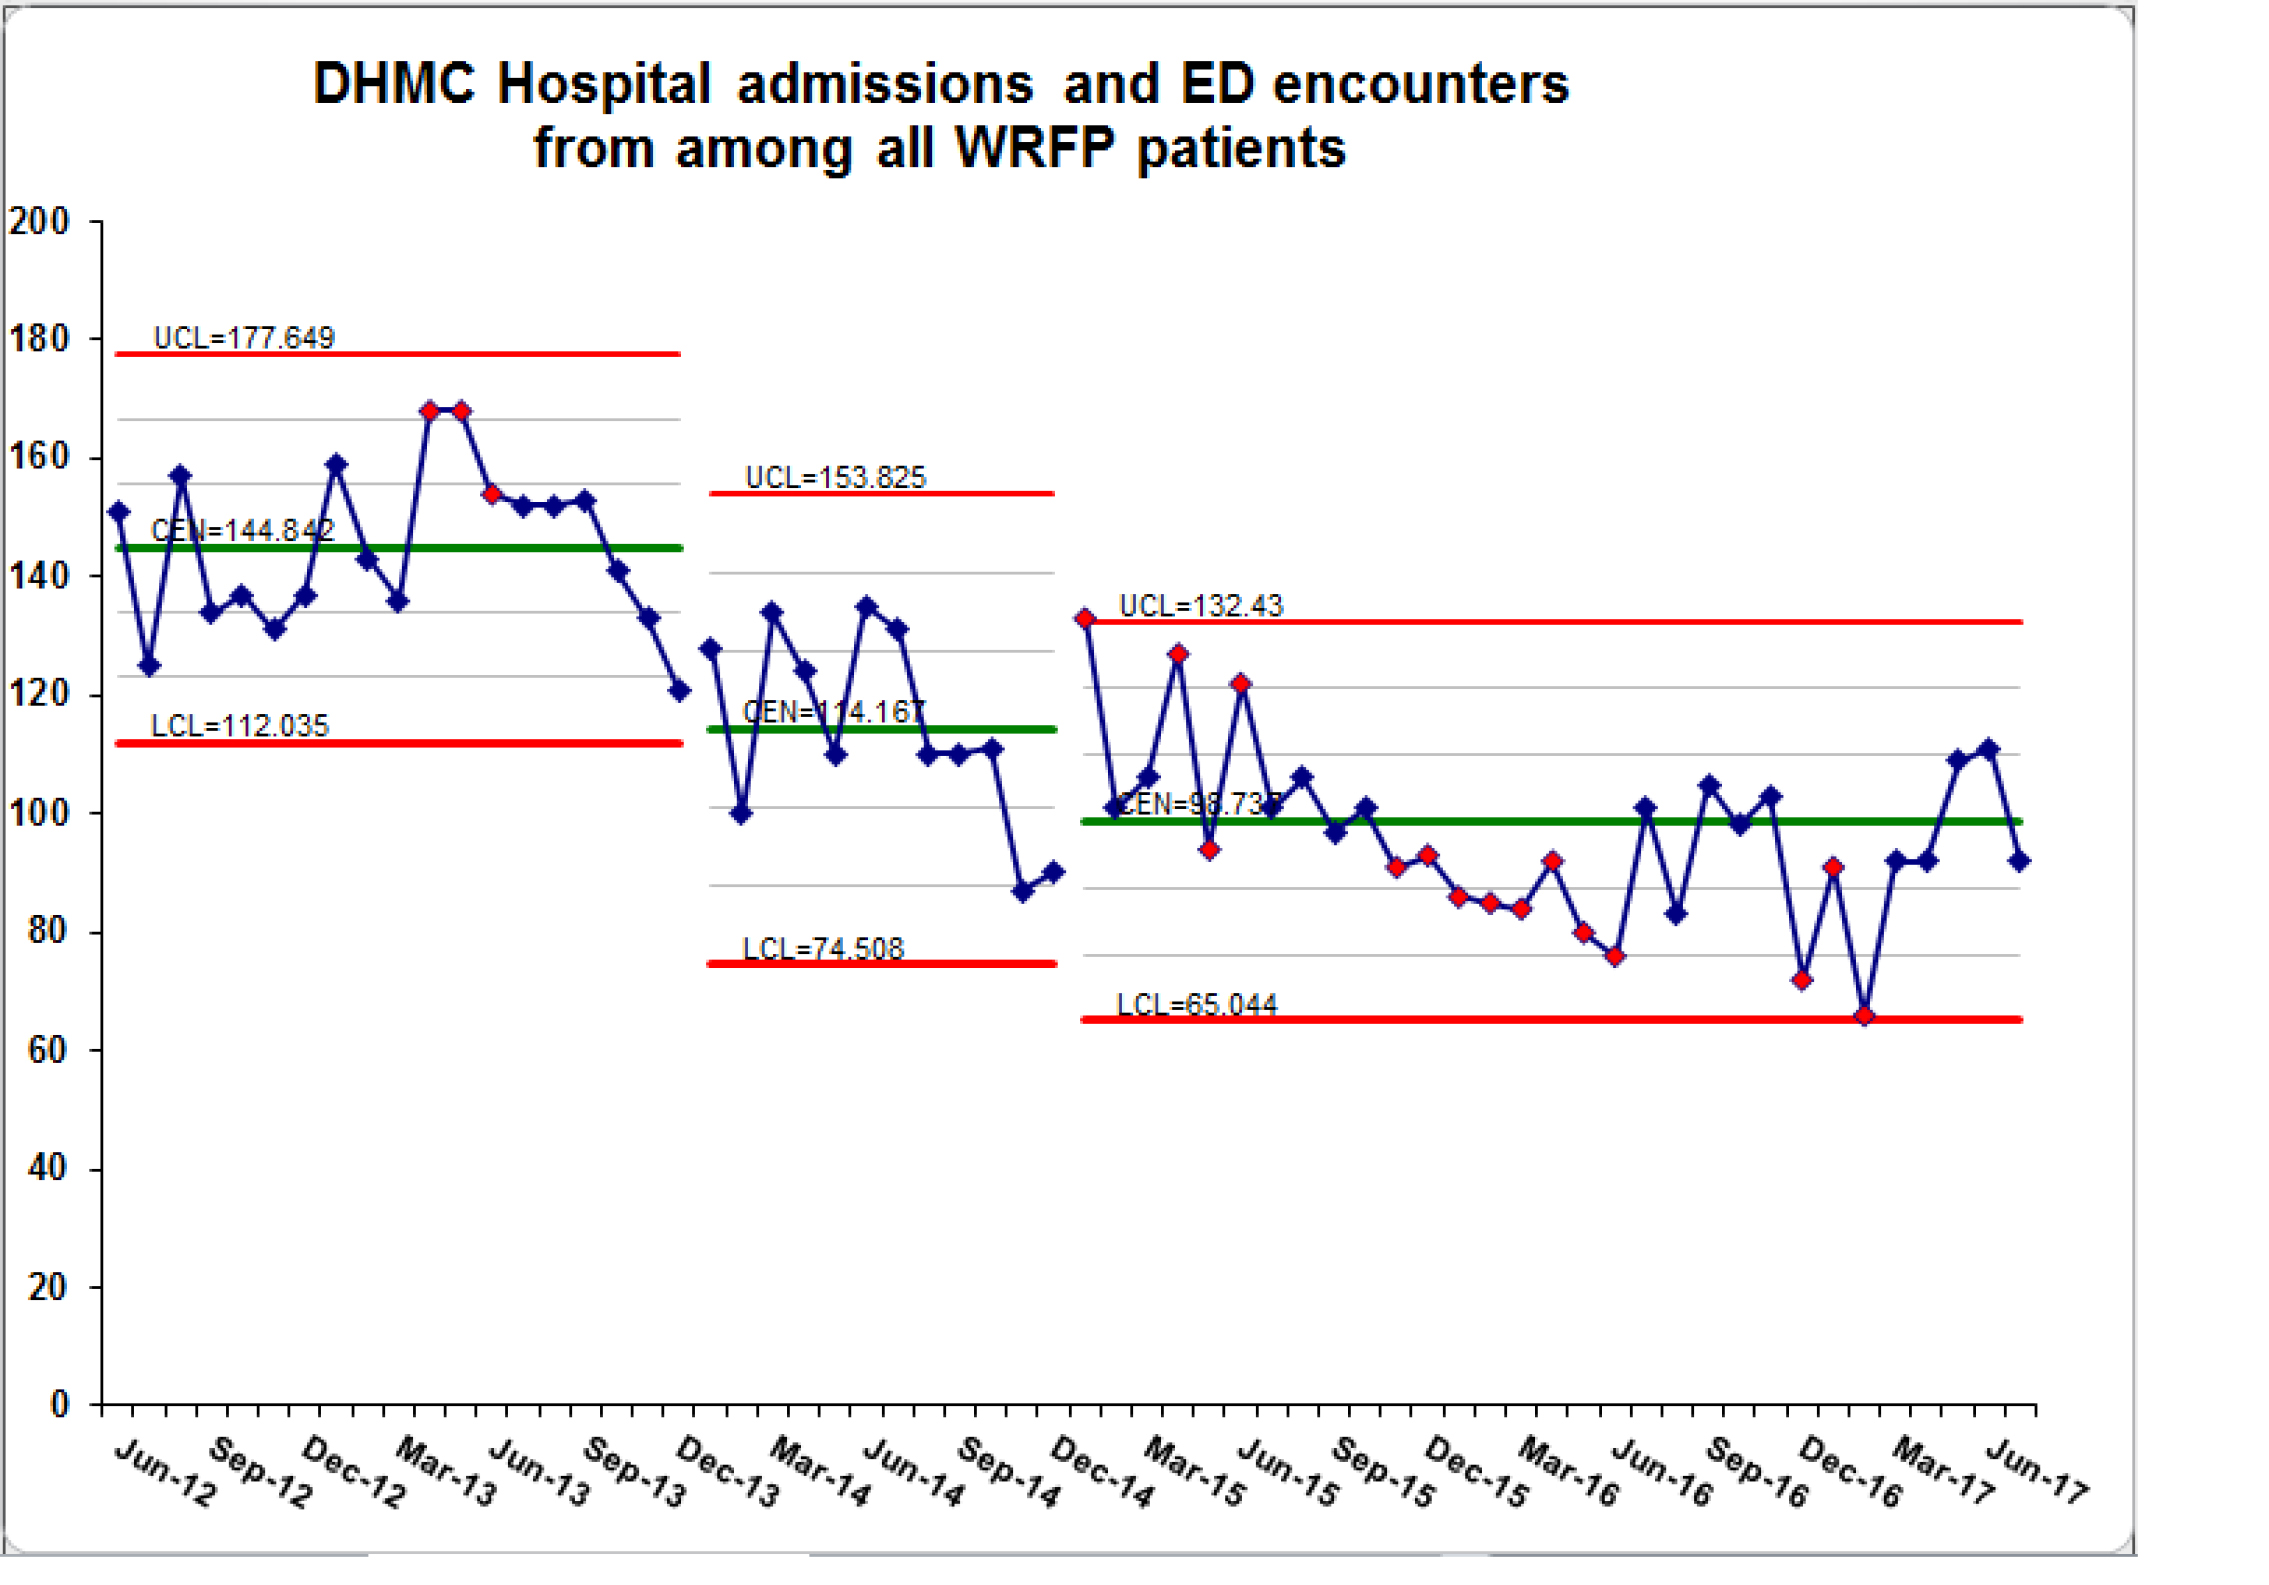 DHMC Admissions and ED Encounters